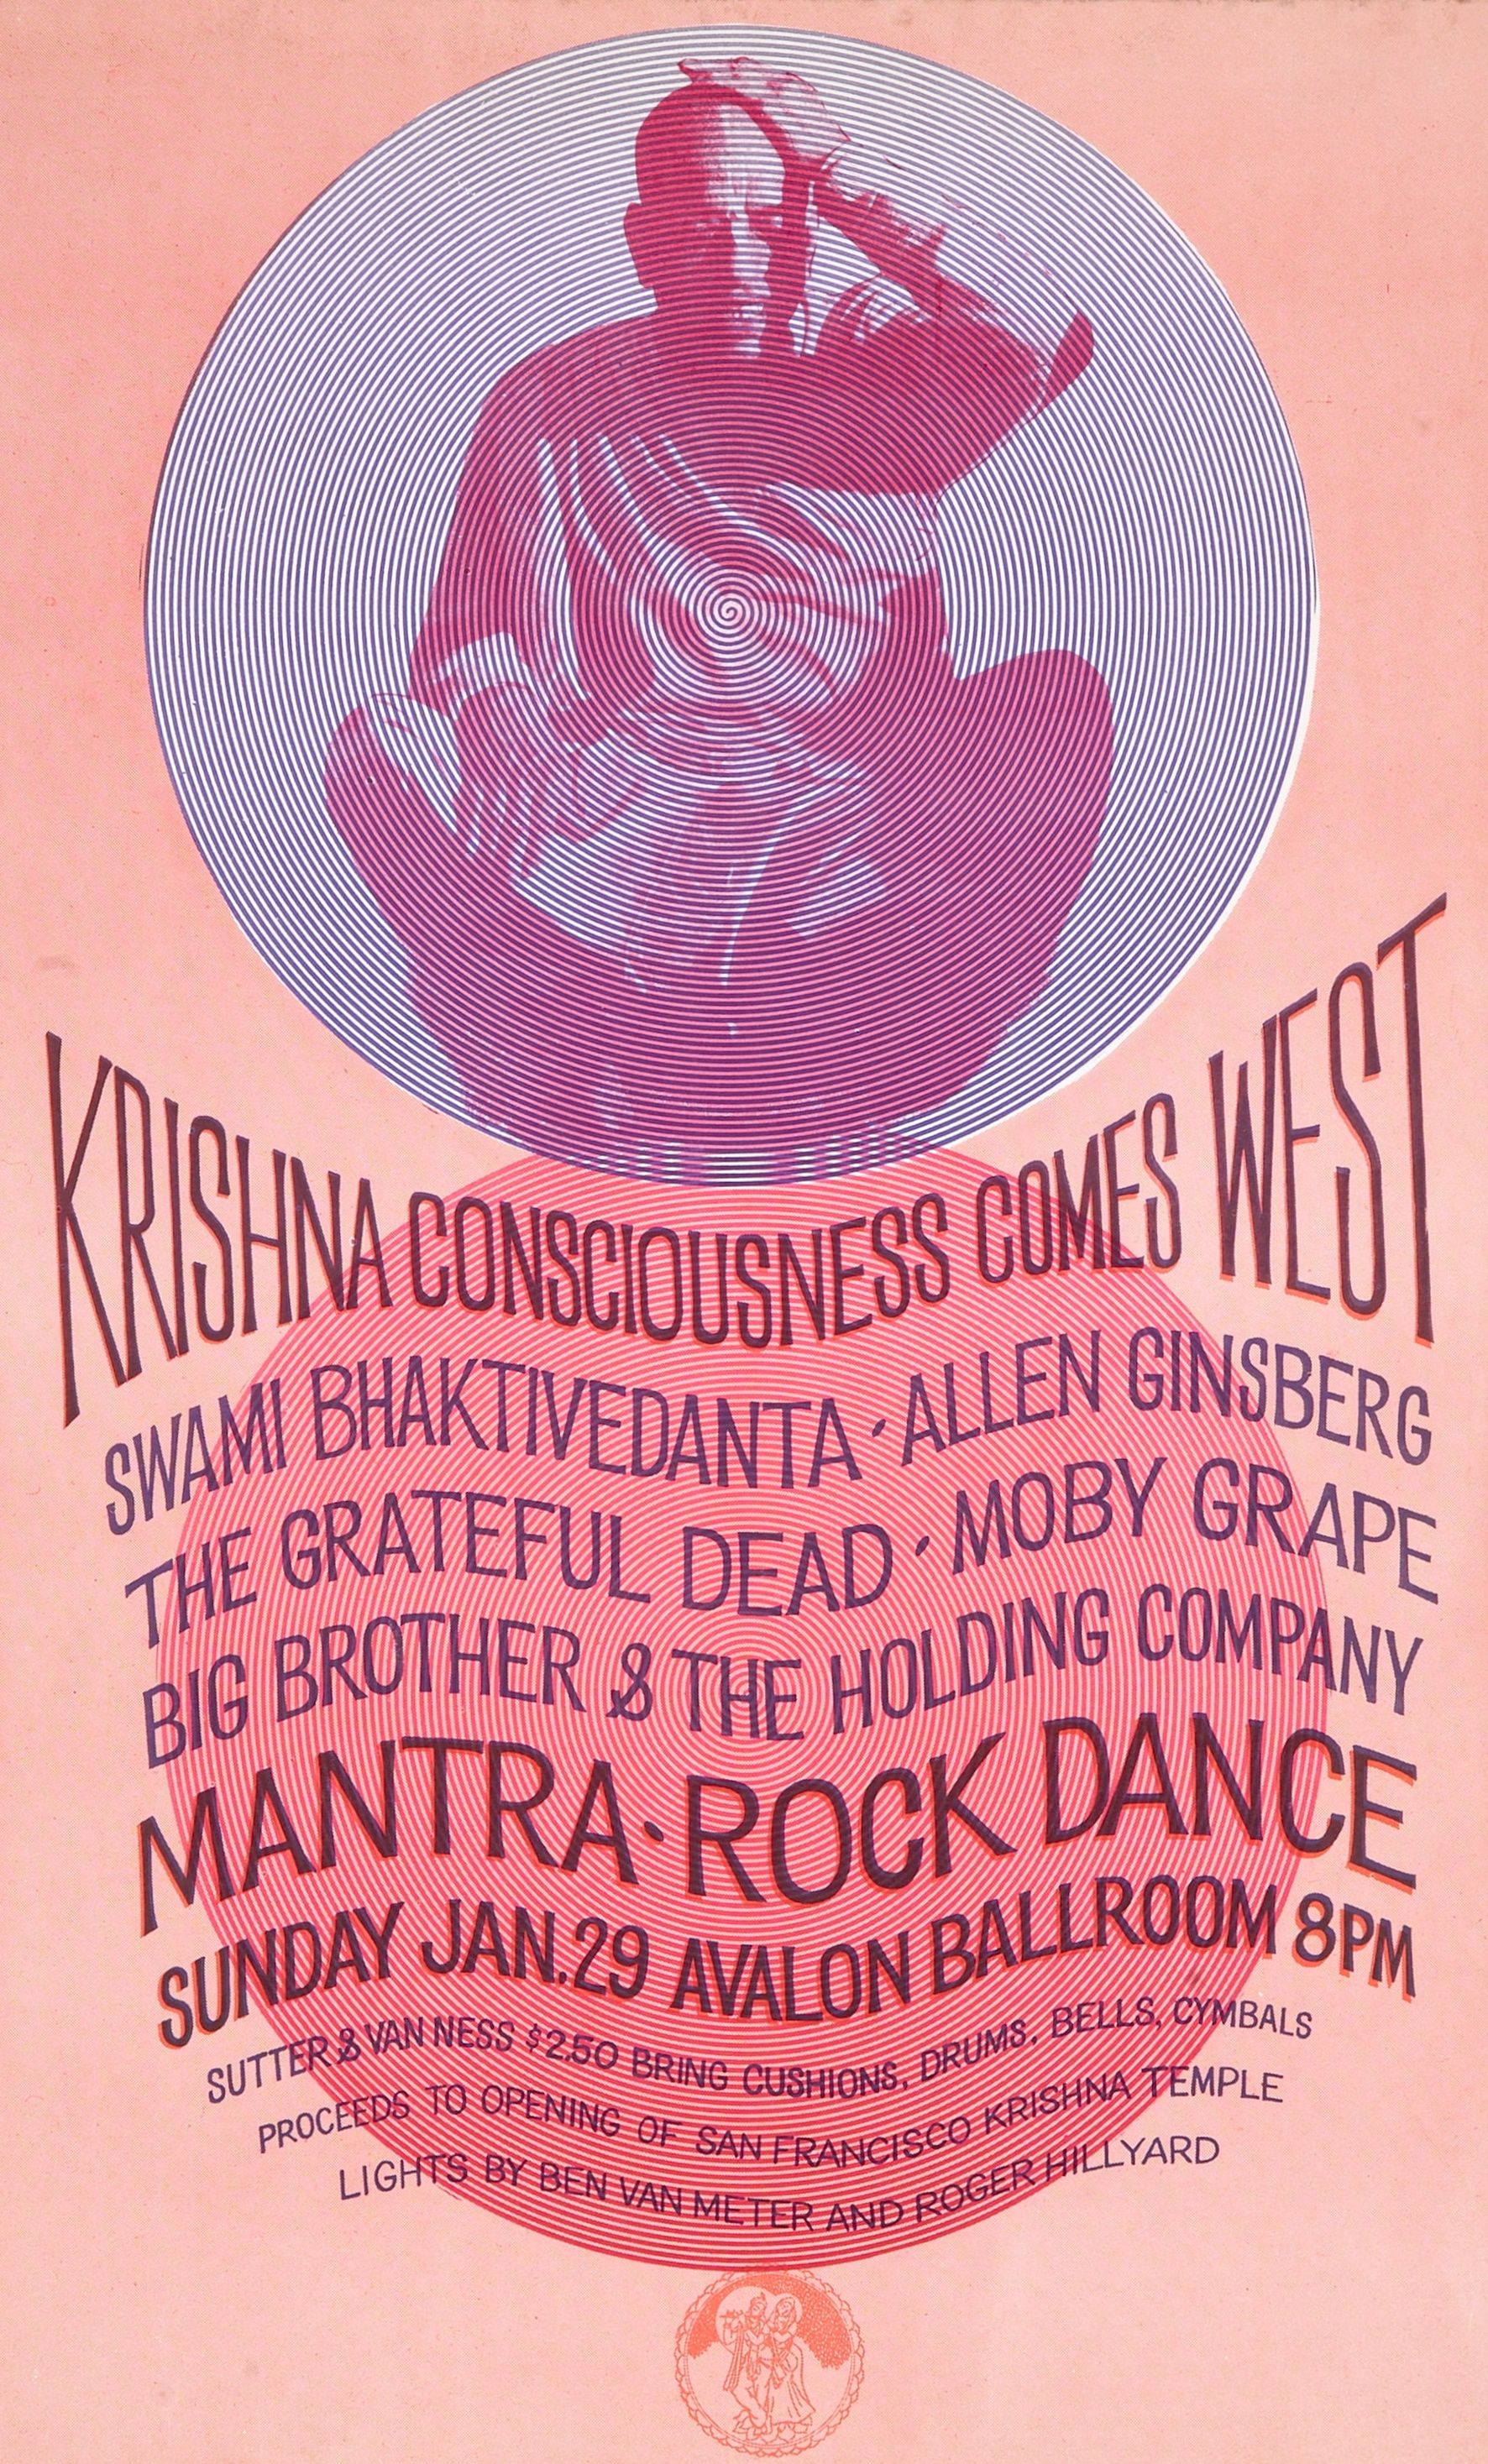 1967 Mantra Rock Dance Avalon posterjpg PortalSan Francisco